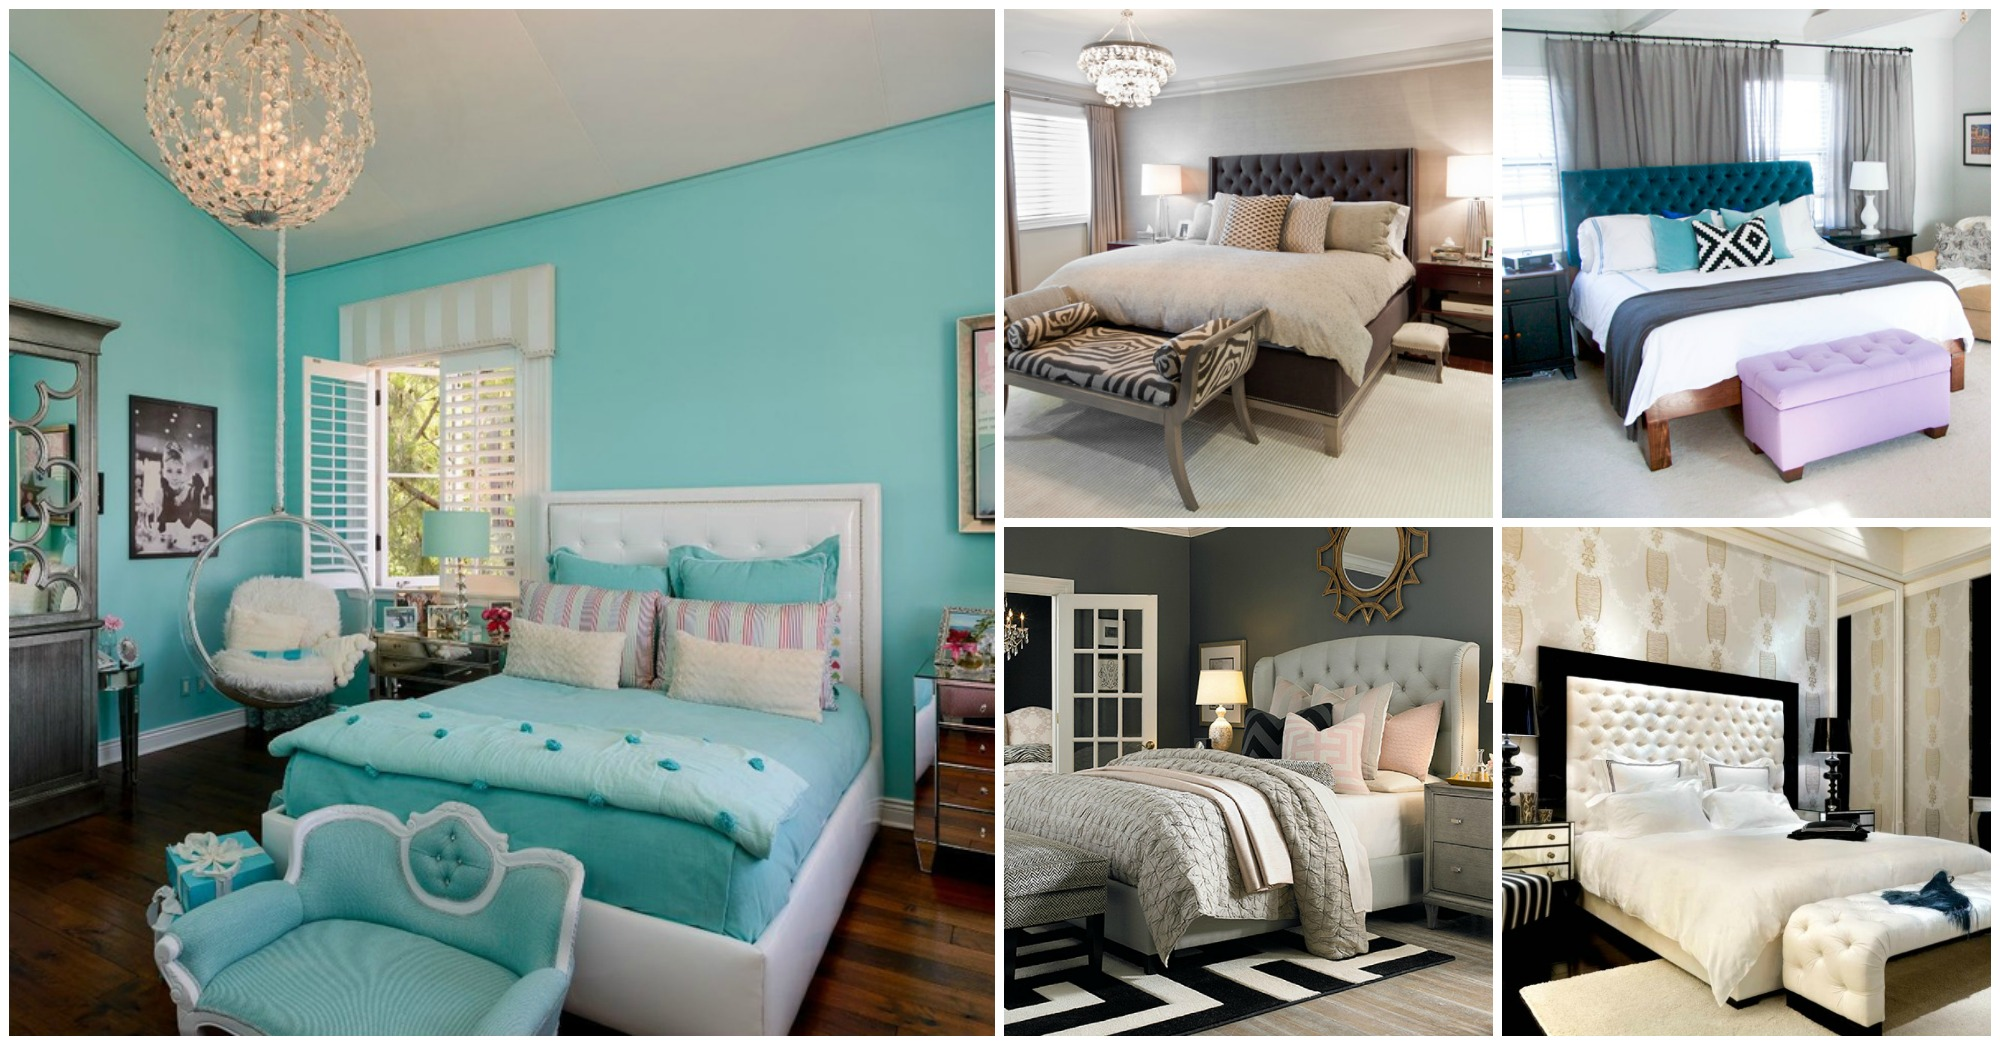 10 Fascinating Tufted Headboard Designs That Are Worth A Second Look